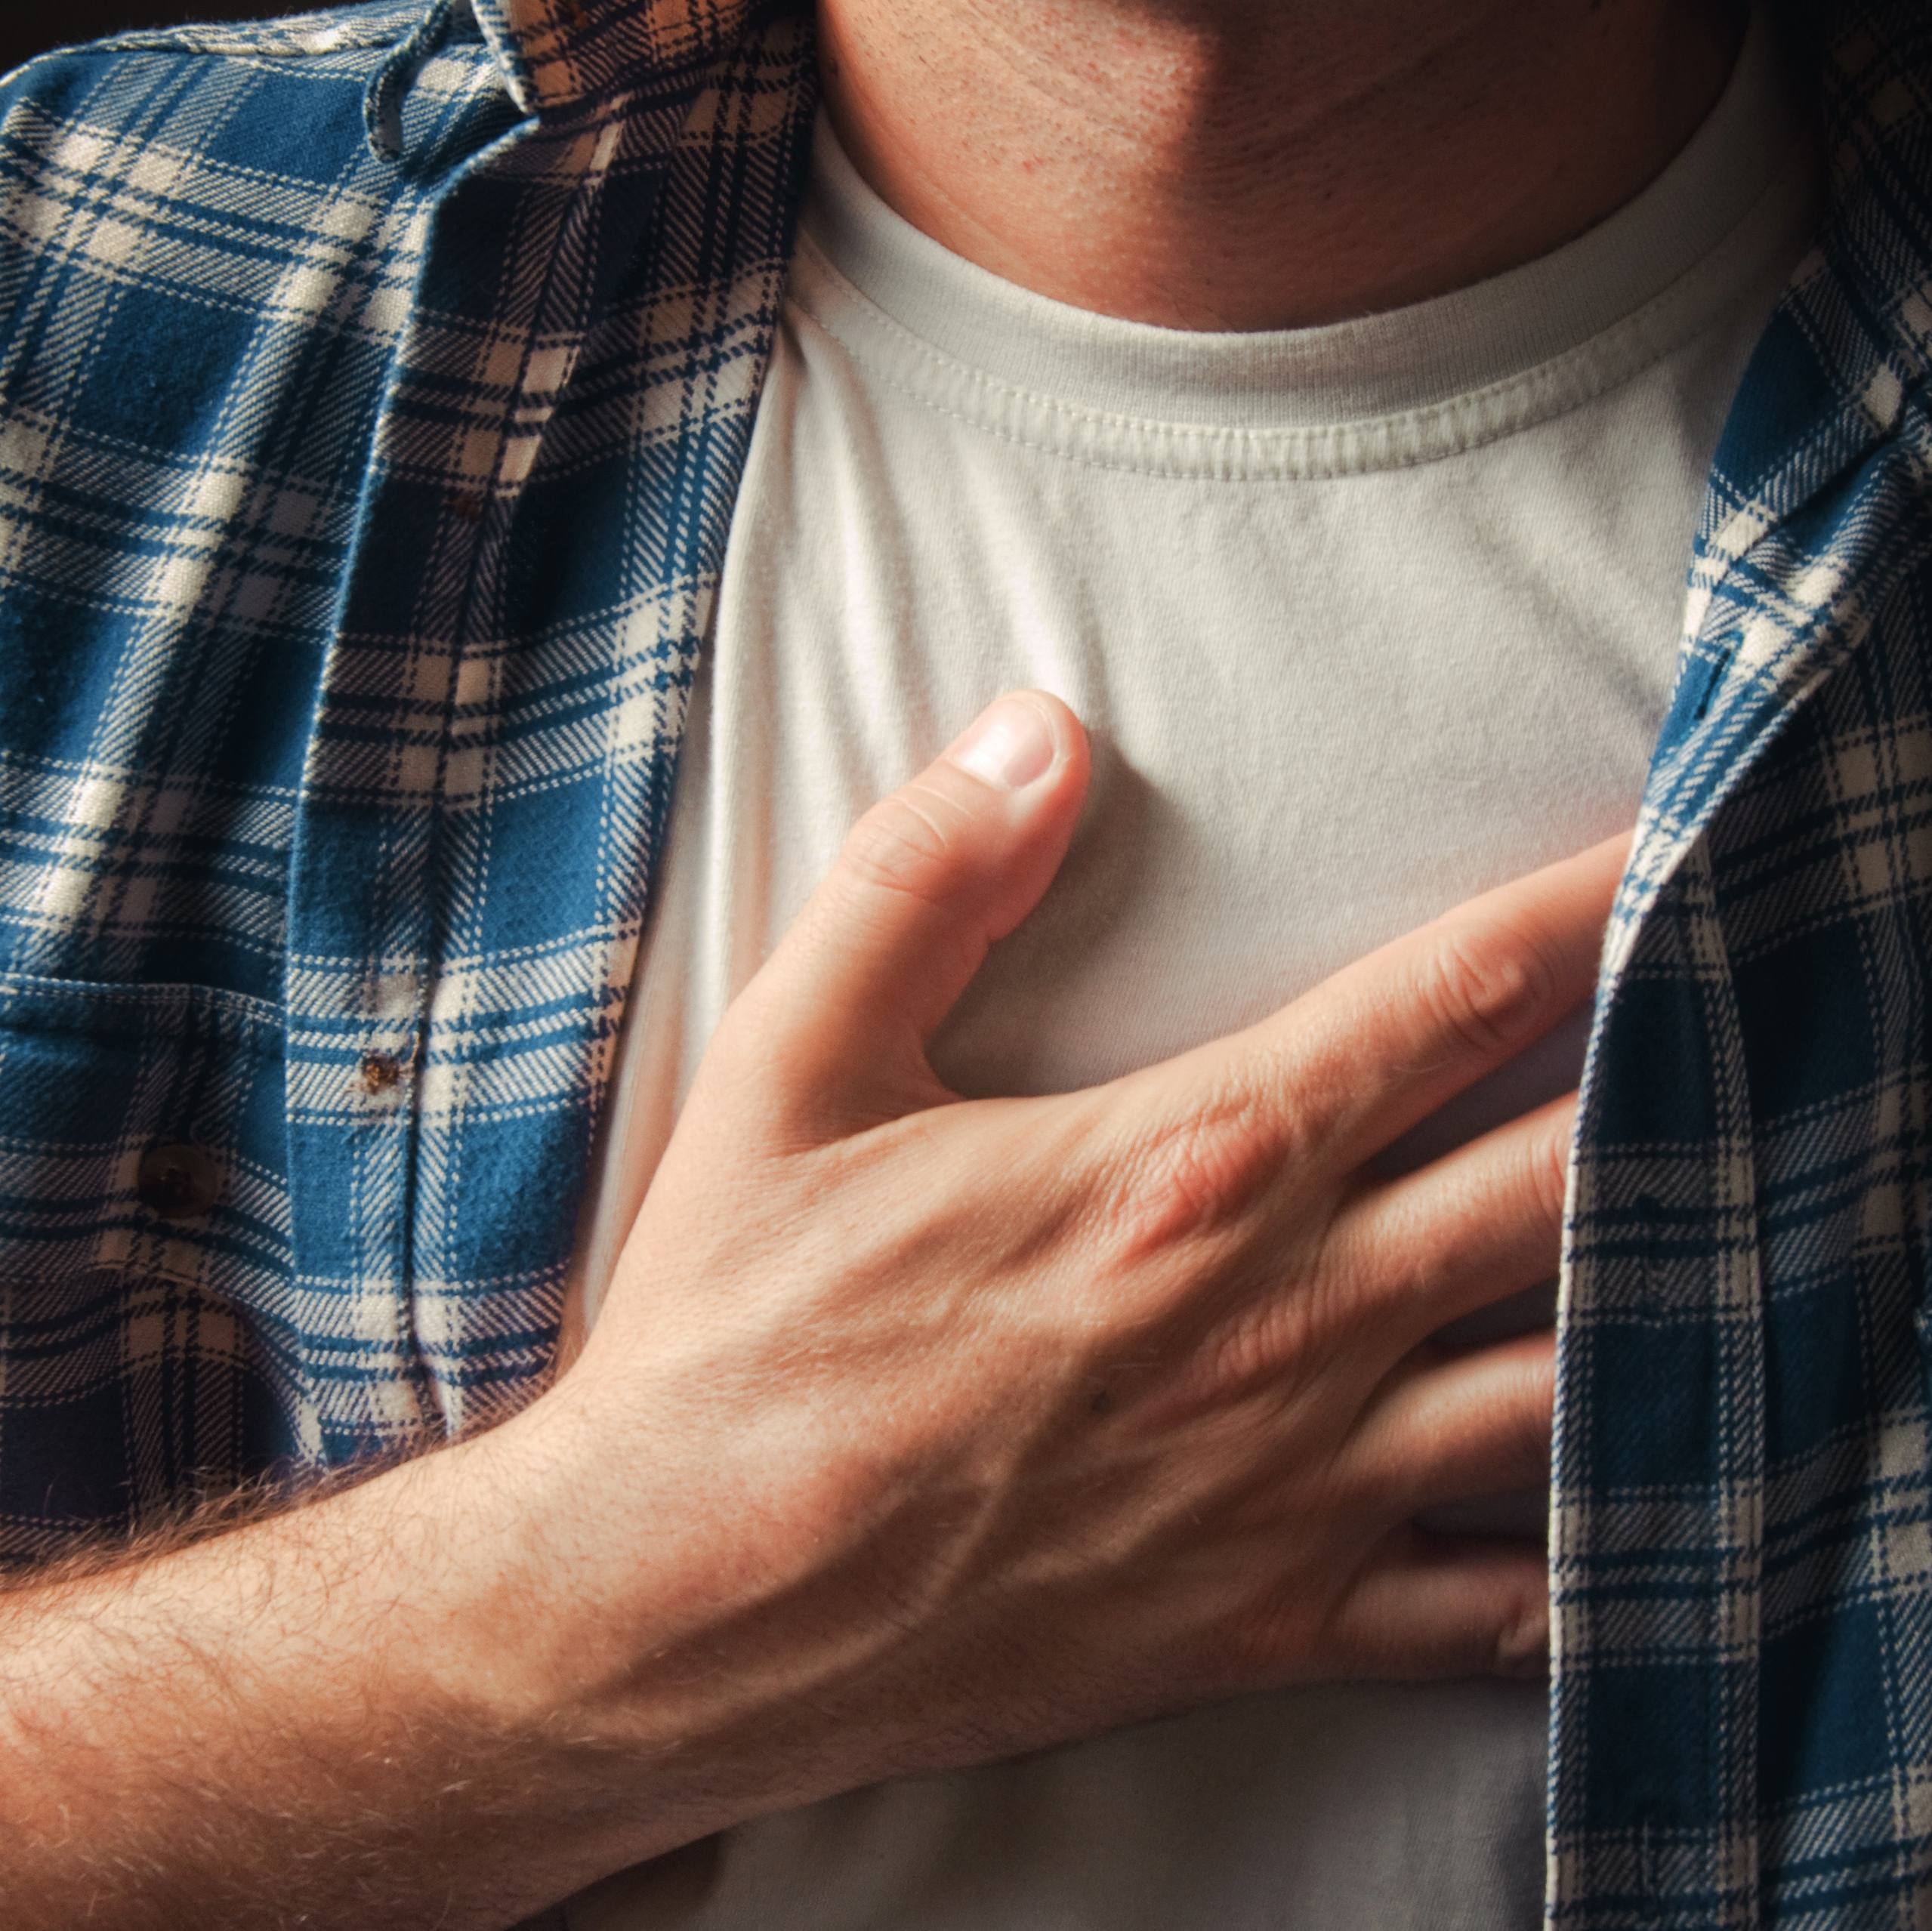 a Caucasian man with his hand on his chest as if he's suffering with pain, heart attack, heartburn